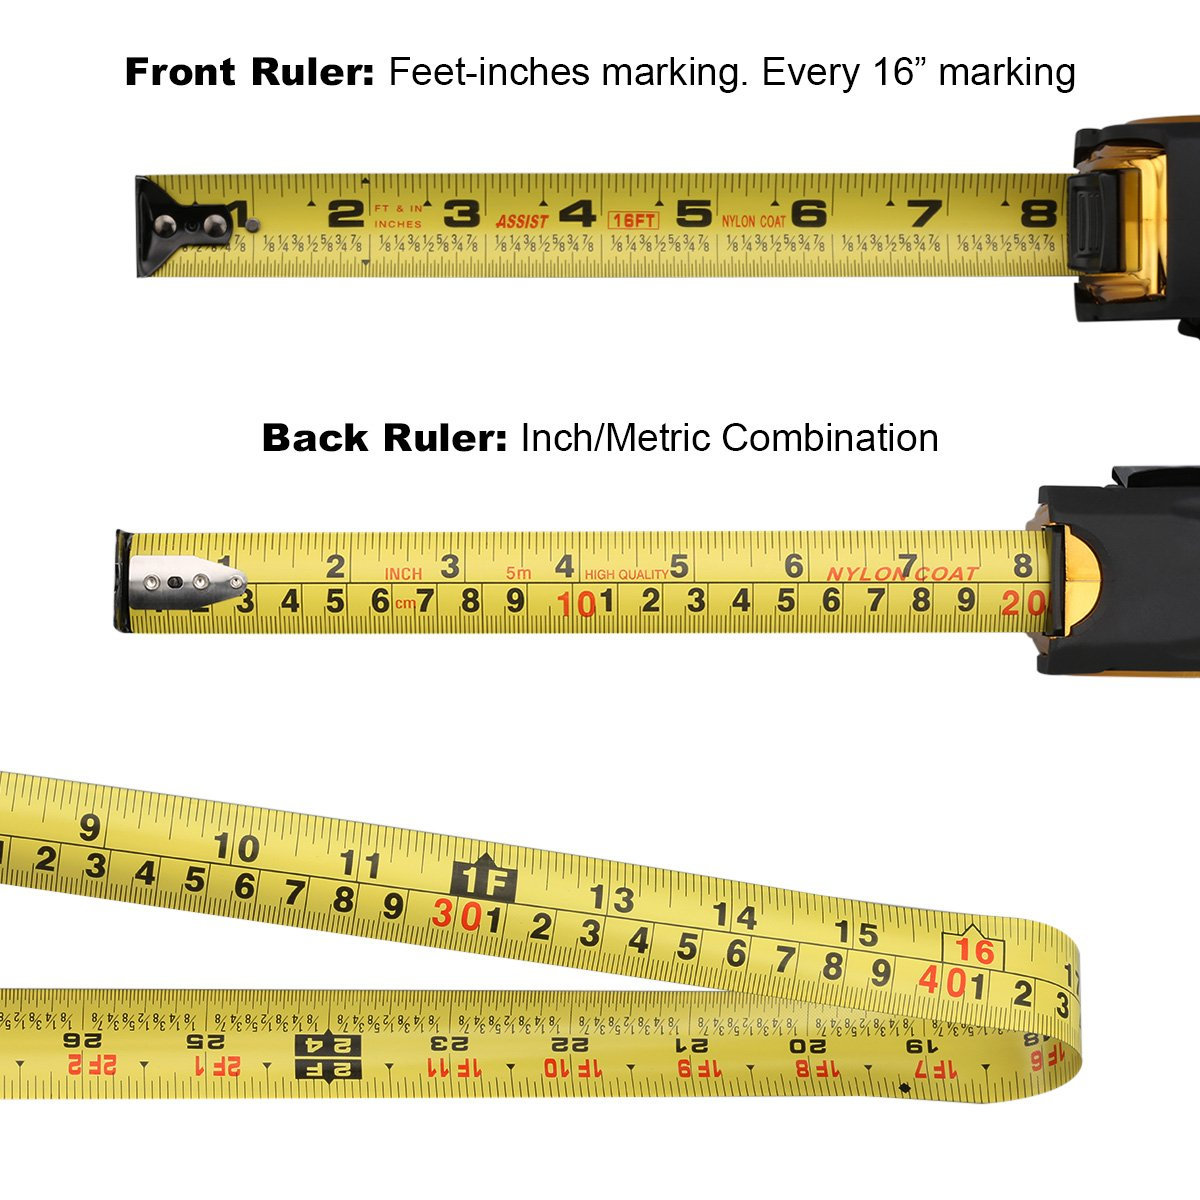 measurement in inches